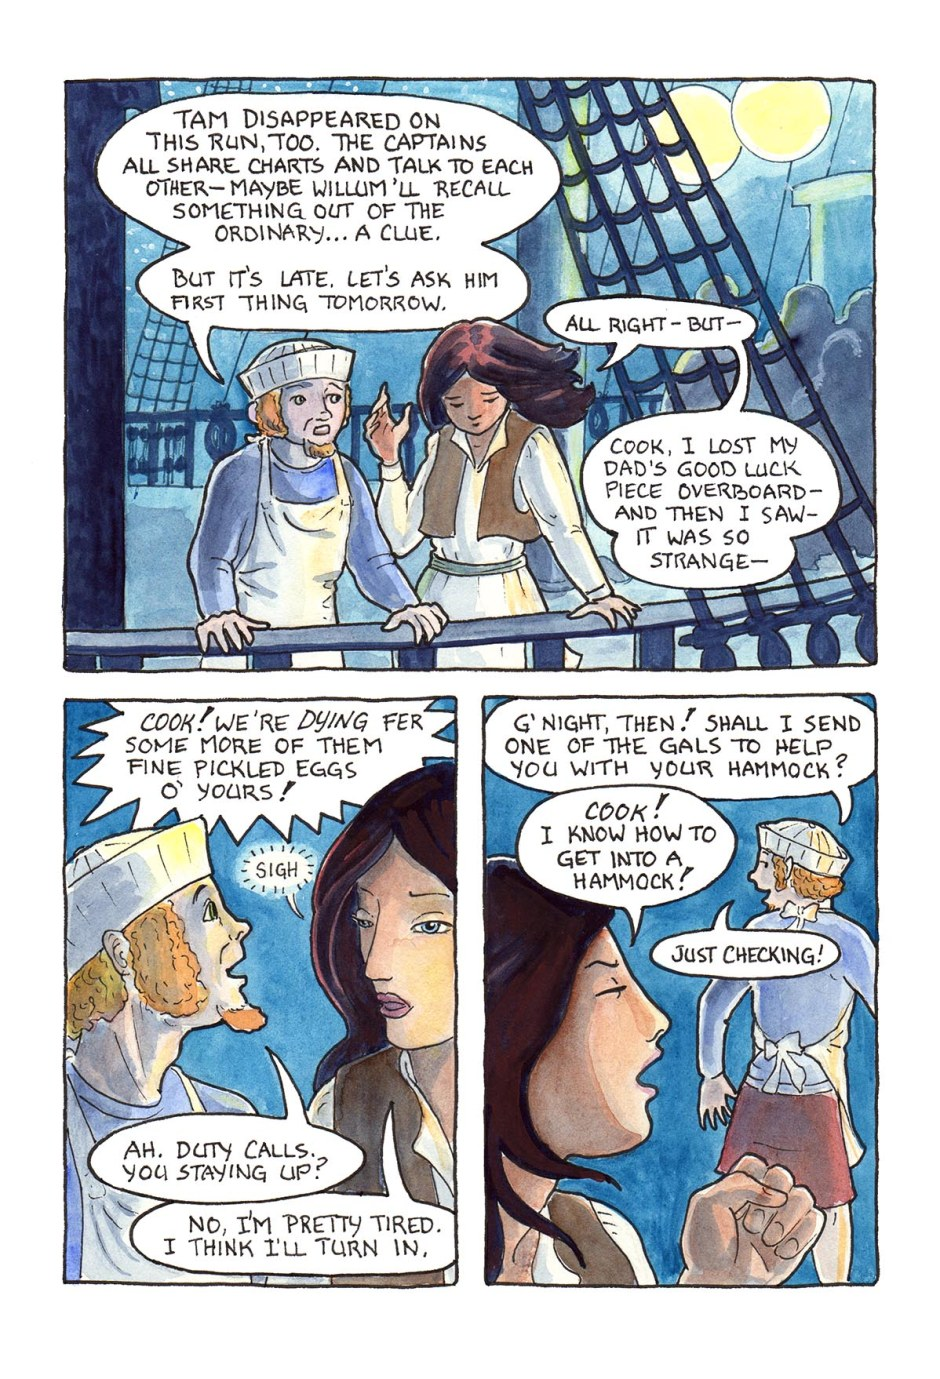 Page 74 — Will Sami ever get to tell what she saw? Will Cook ever be serious? Only time and fate will tell!